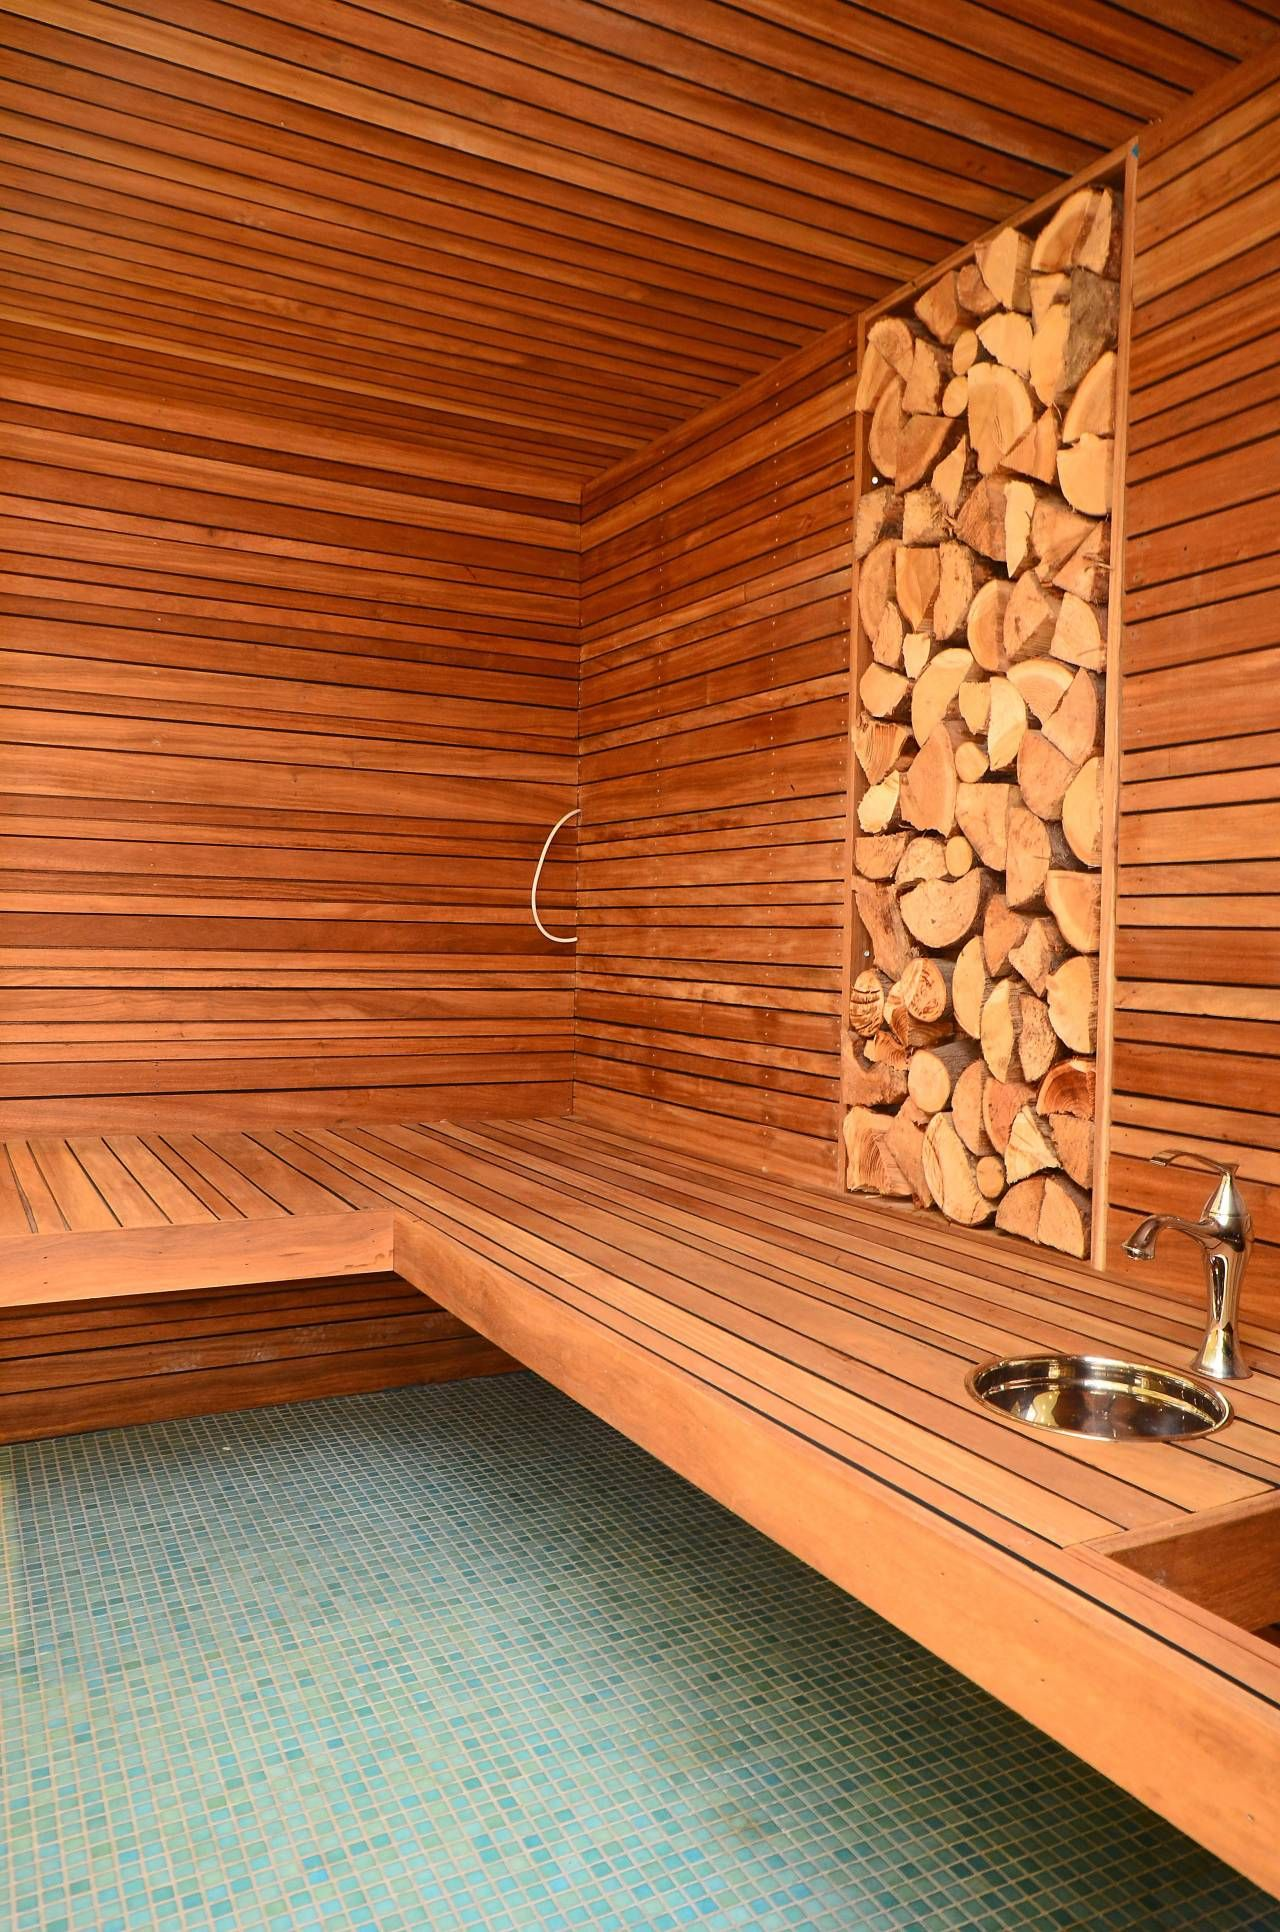 Diy sauna saunas diy sauna and spa for Sauna design plans